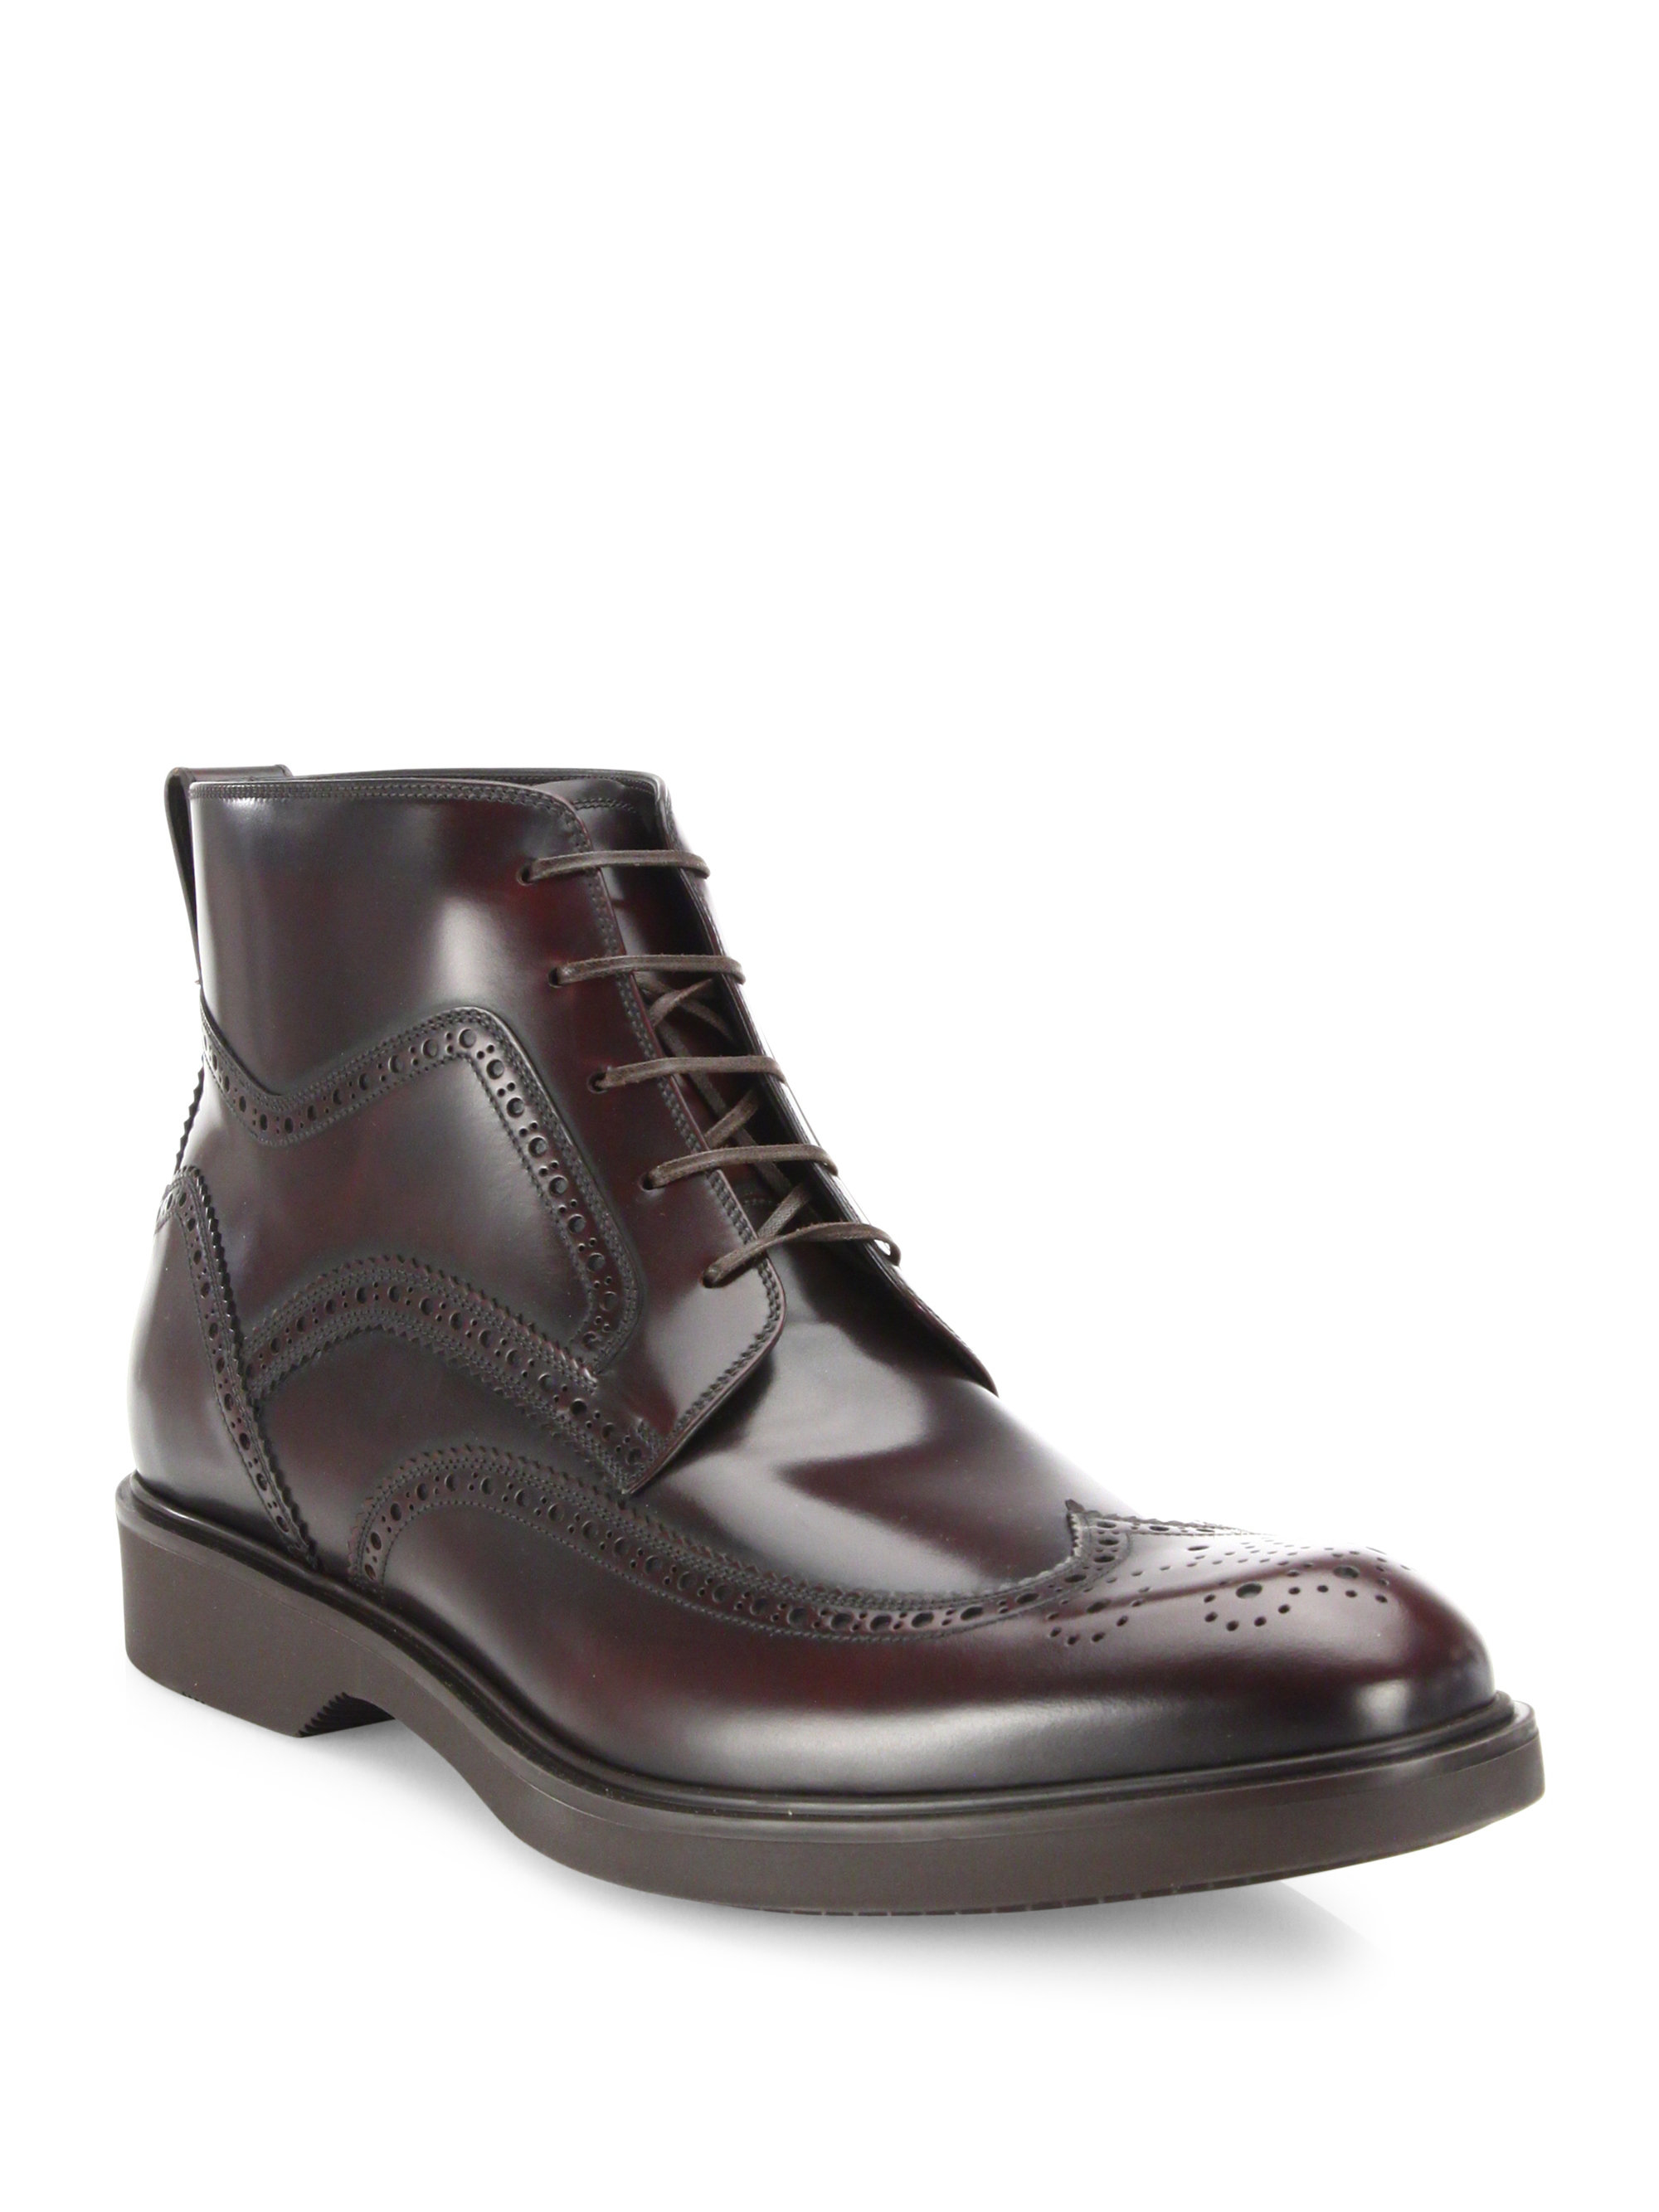 ferragamo gaiano calfskin wingtip ankle boots in brown for